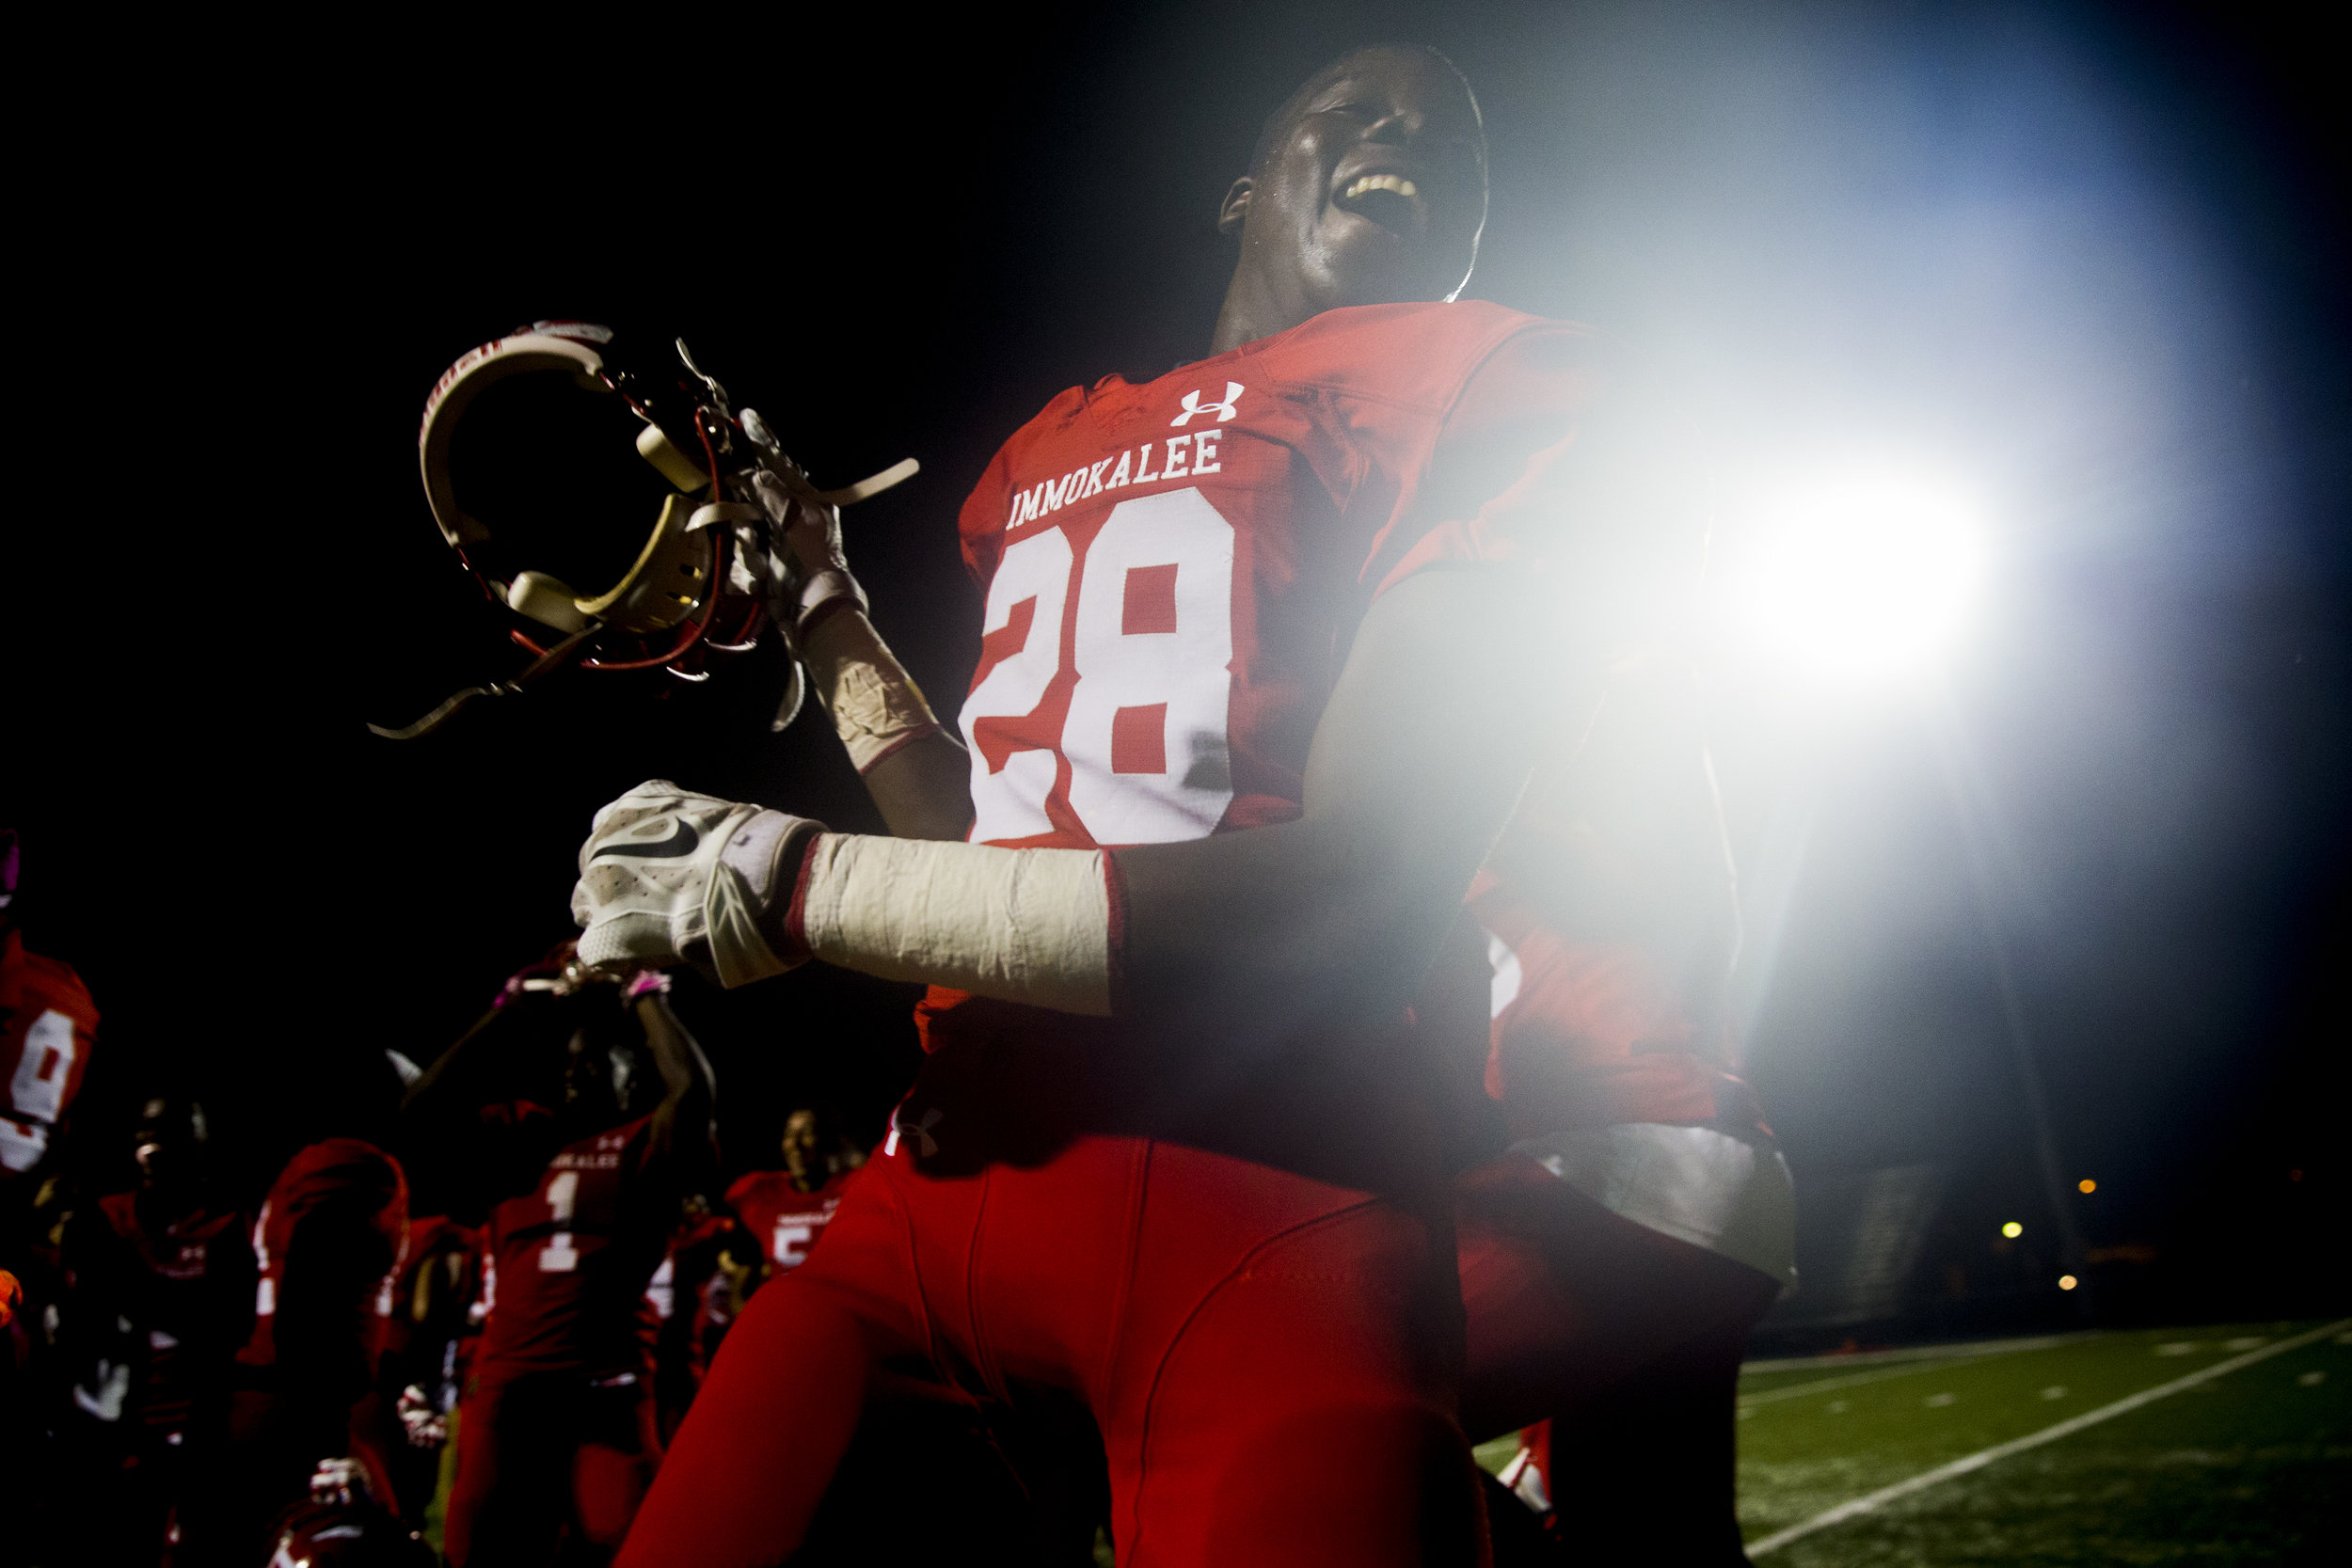 After defeating district rival Dunbar in a tightly contested matchup 30-23 Immokalee's Nevertesonne Lahens (28) and the rest of the team rush the field in celebration Tuesday, October 17, 2017 in Immokalee, Fla.